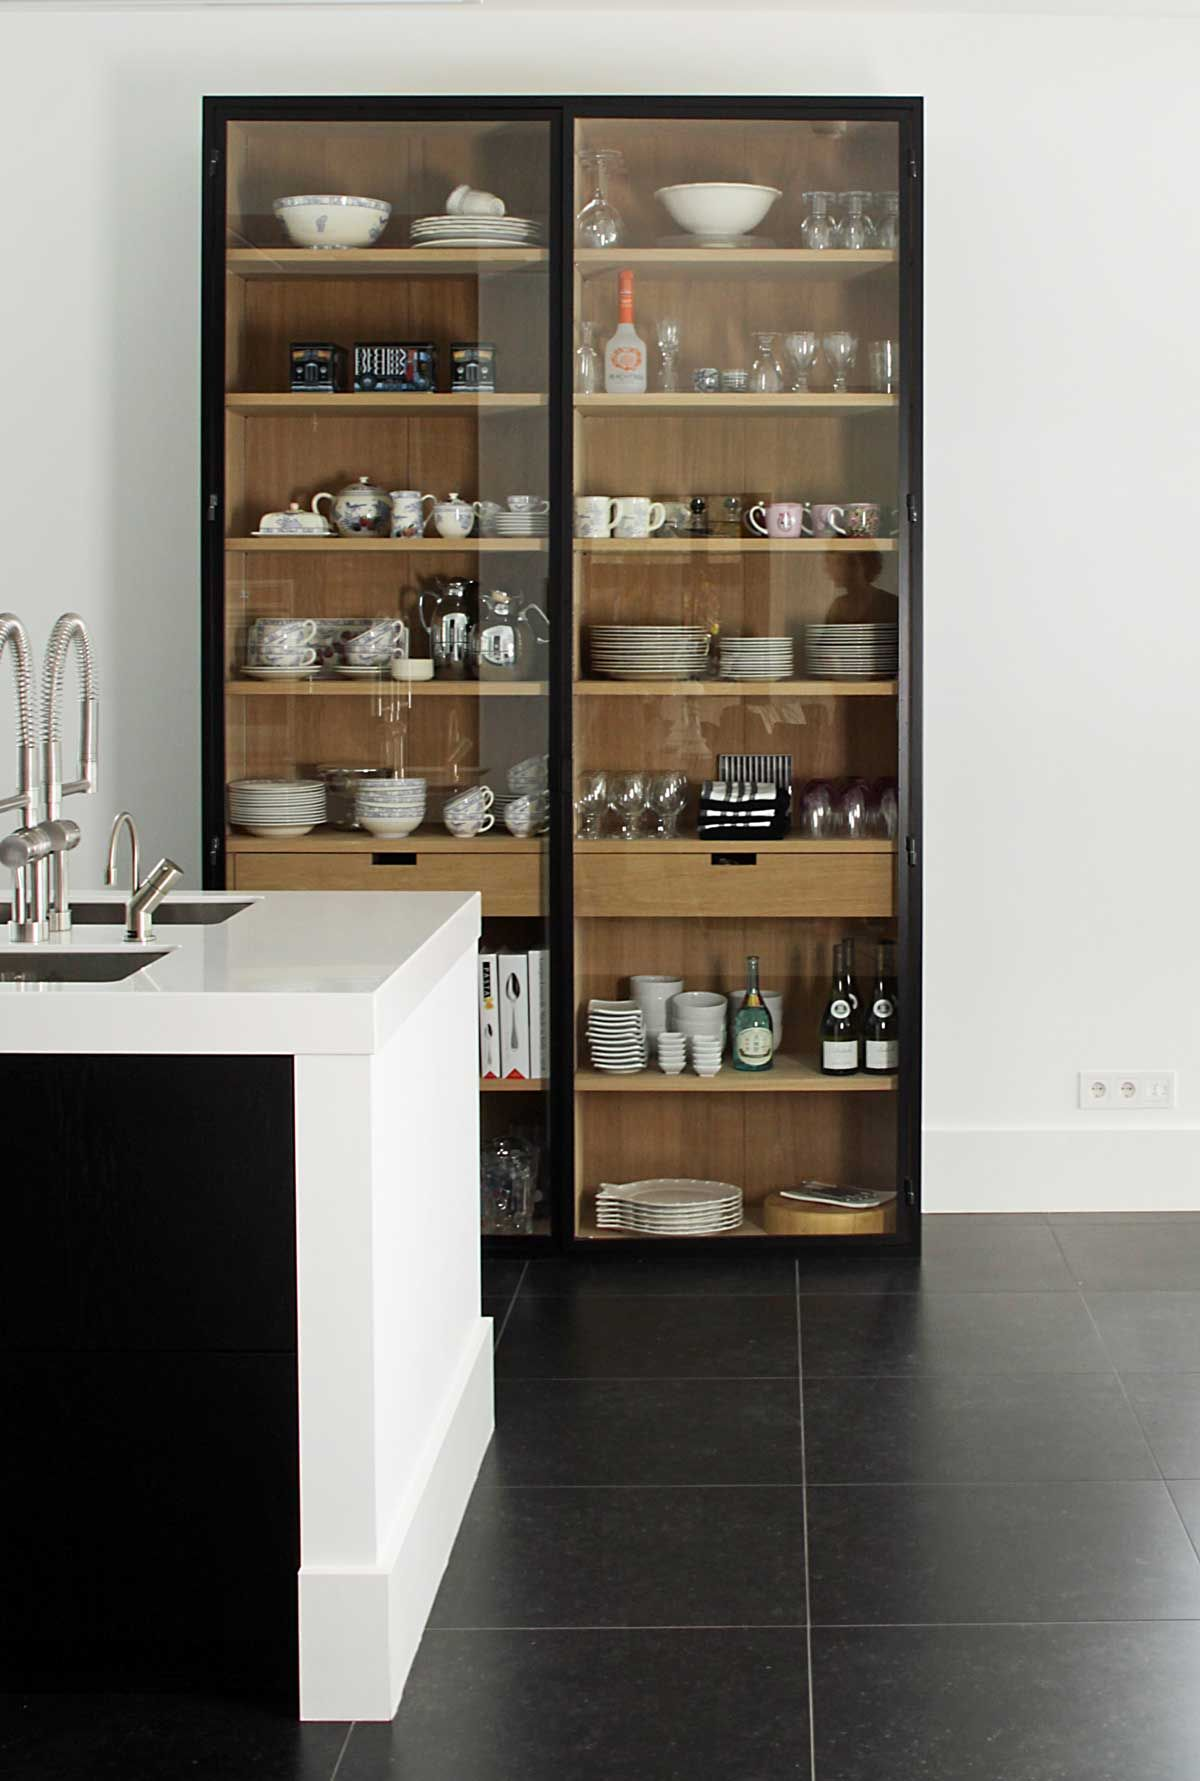 This Glass Window Kitchen Cabinet Lets Me Easily Find What I Need